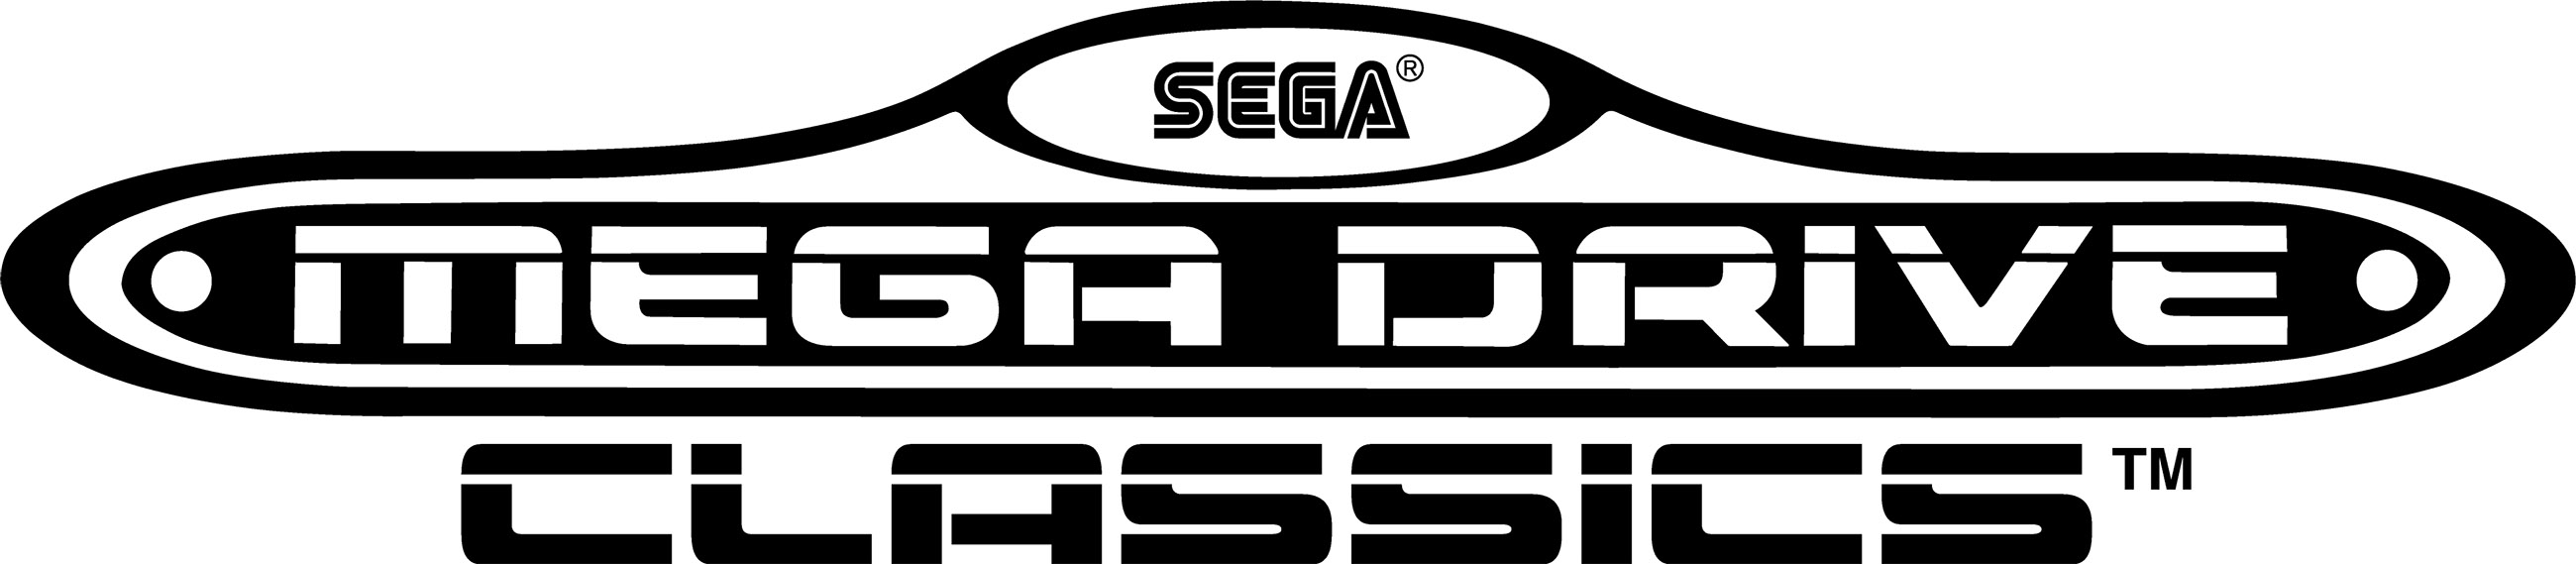 SEGA Mega Drive Classics Launches for PS4, Xbox One and PC with 90's